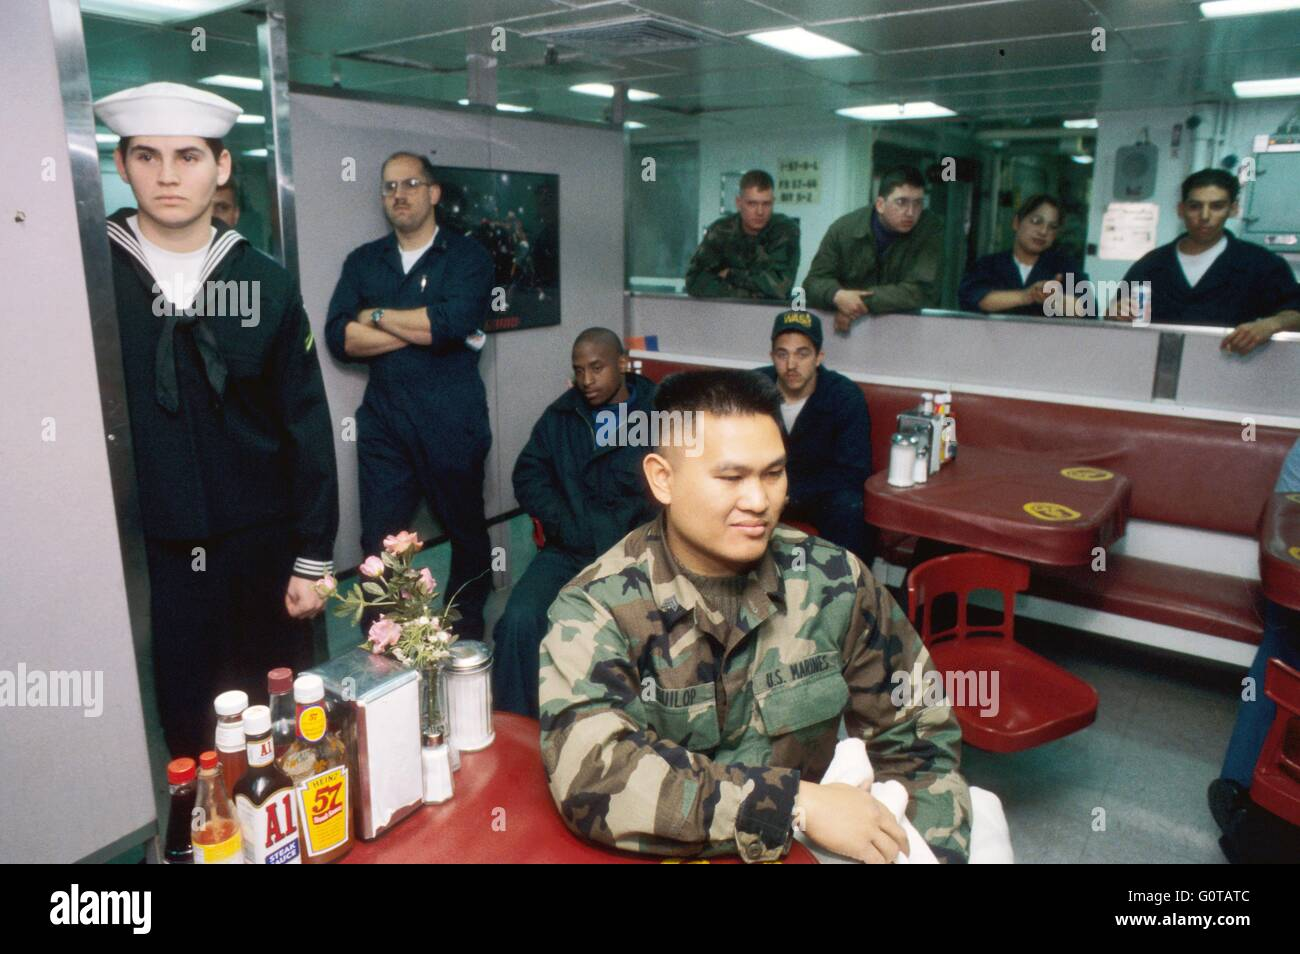 US NAVY, crew in refectory room on amphibious assault ship Wasp Stock Photo